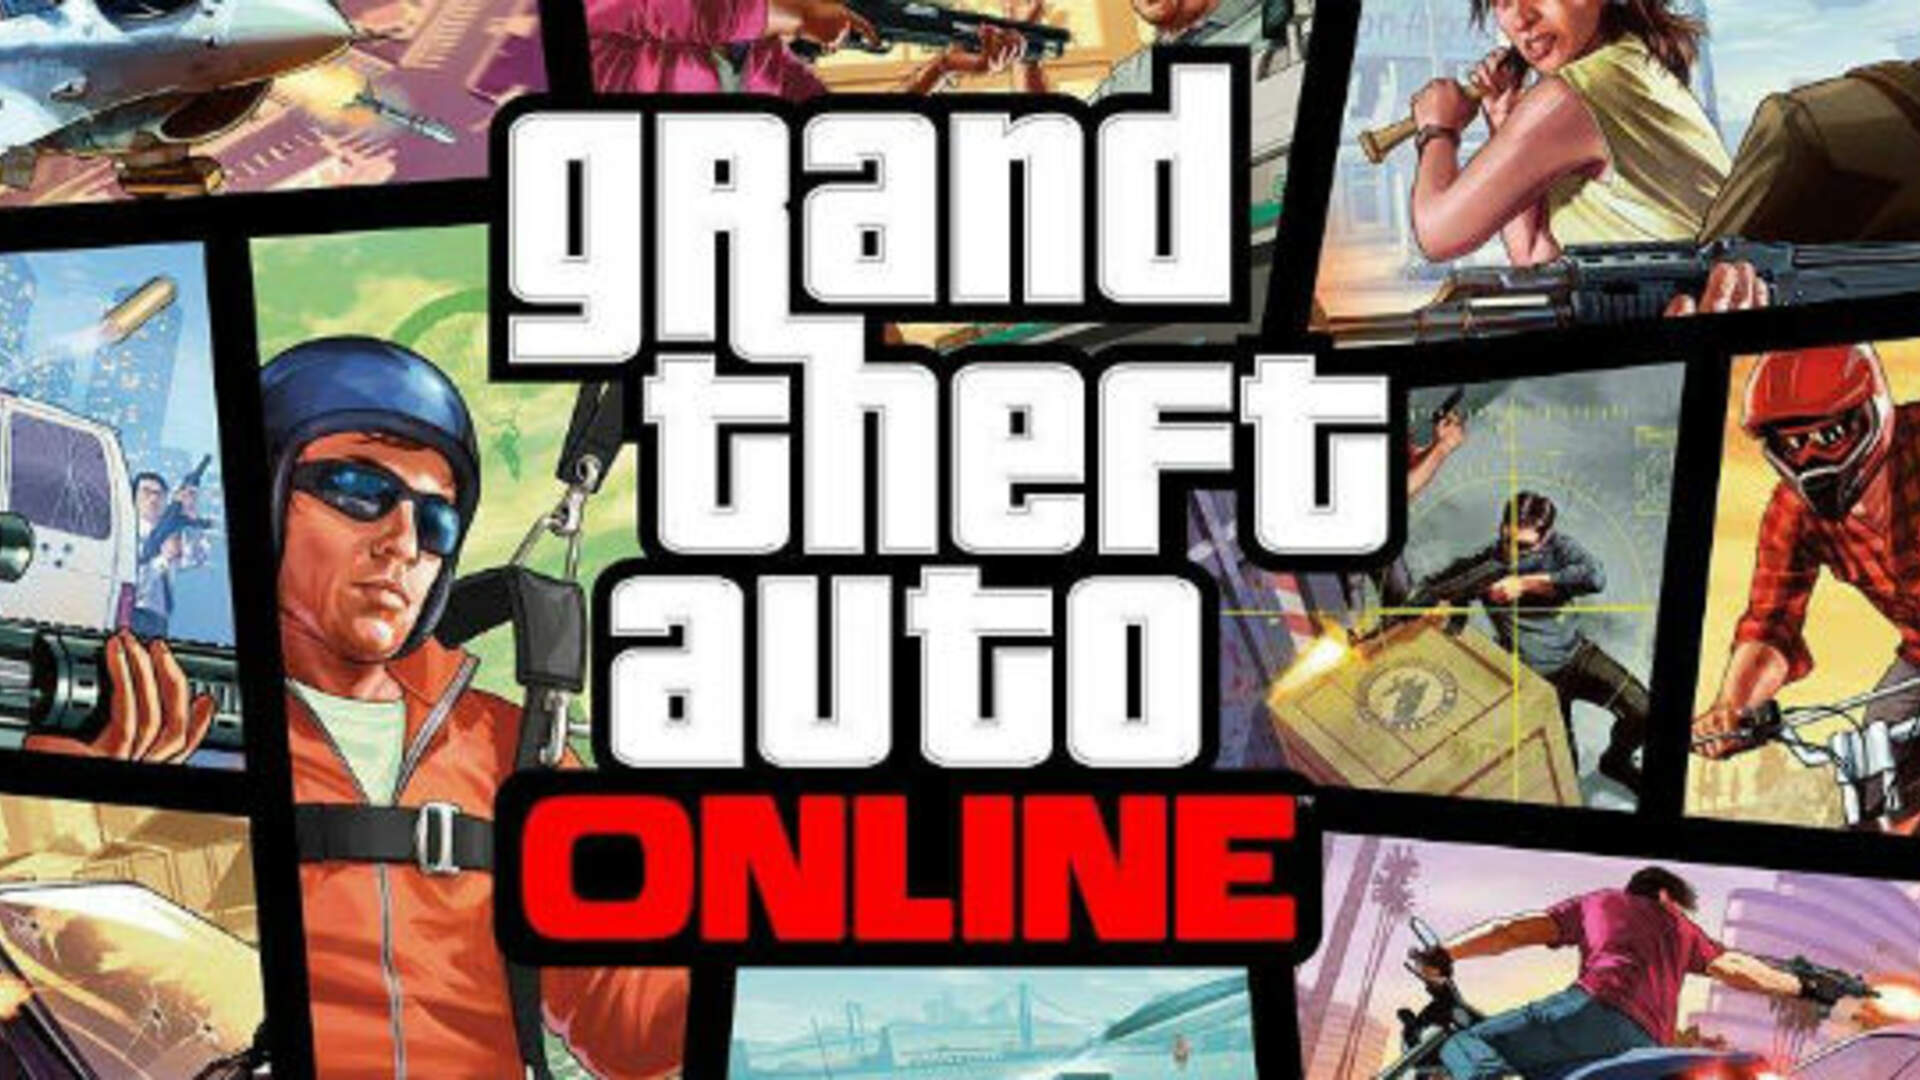 Grand Theft Auto V Modding Tool, OpenIV, is Back Online After Legal Threat From Take-Two